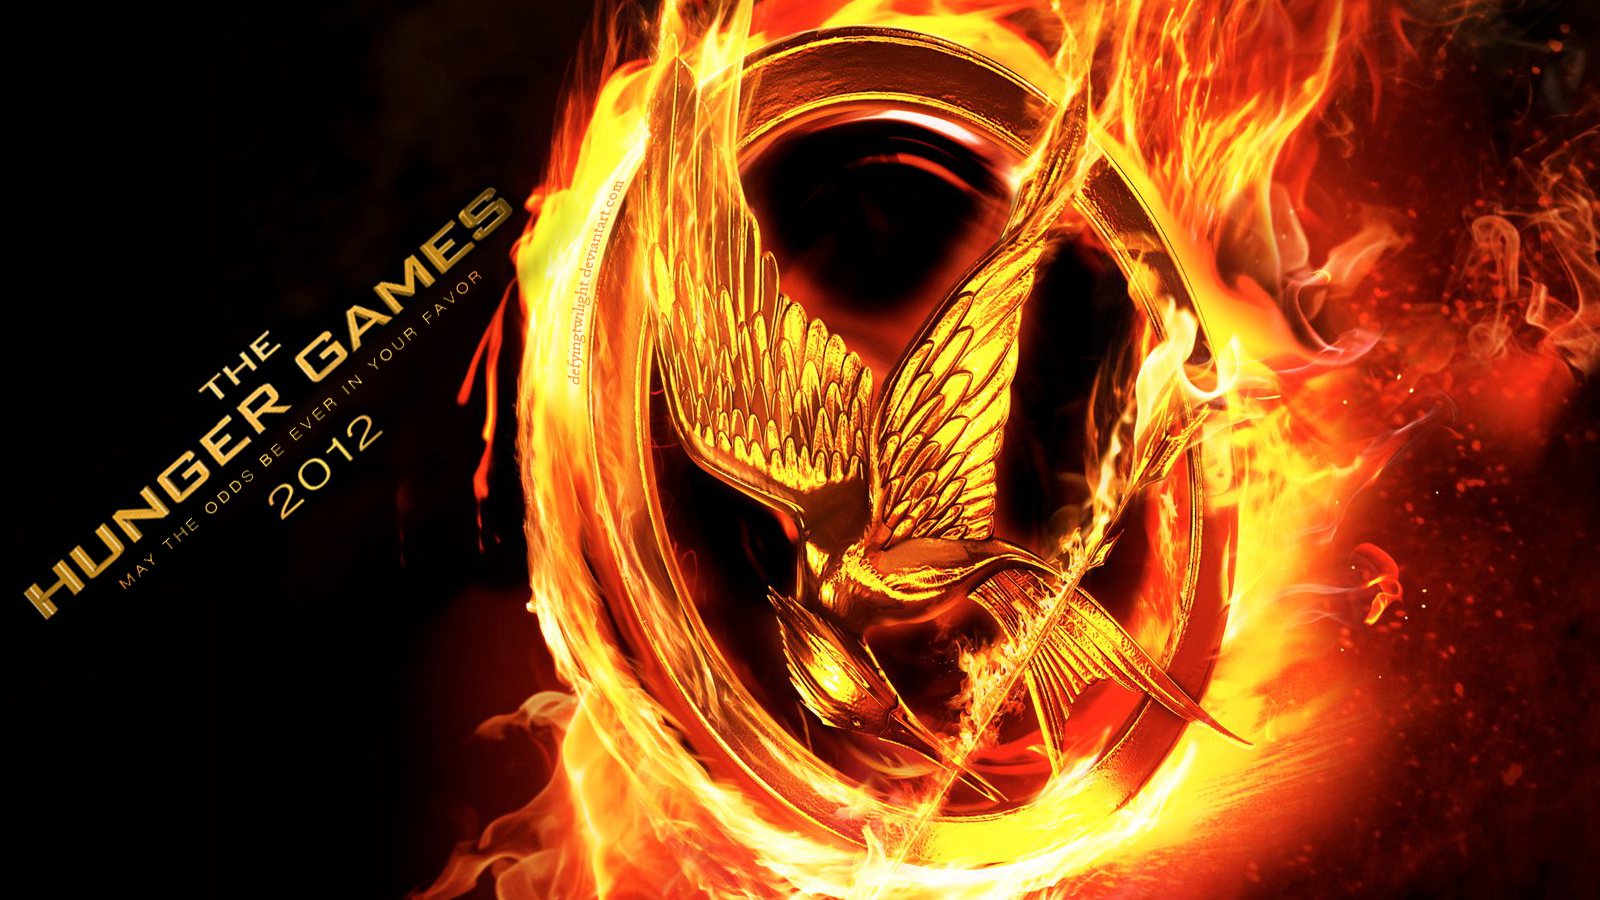 hunger game wallpapers